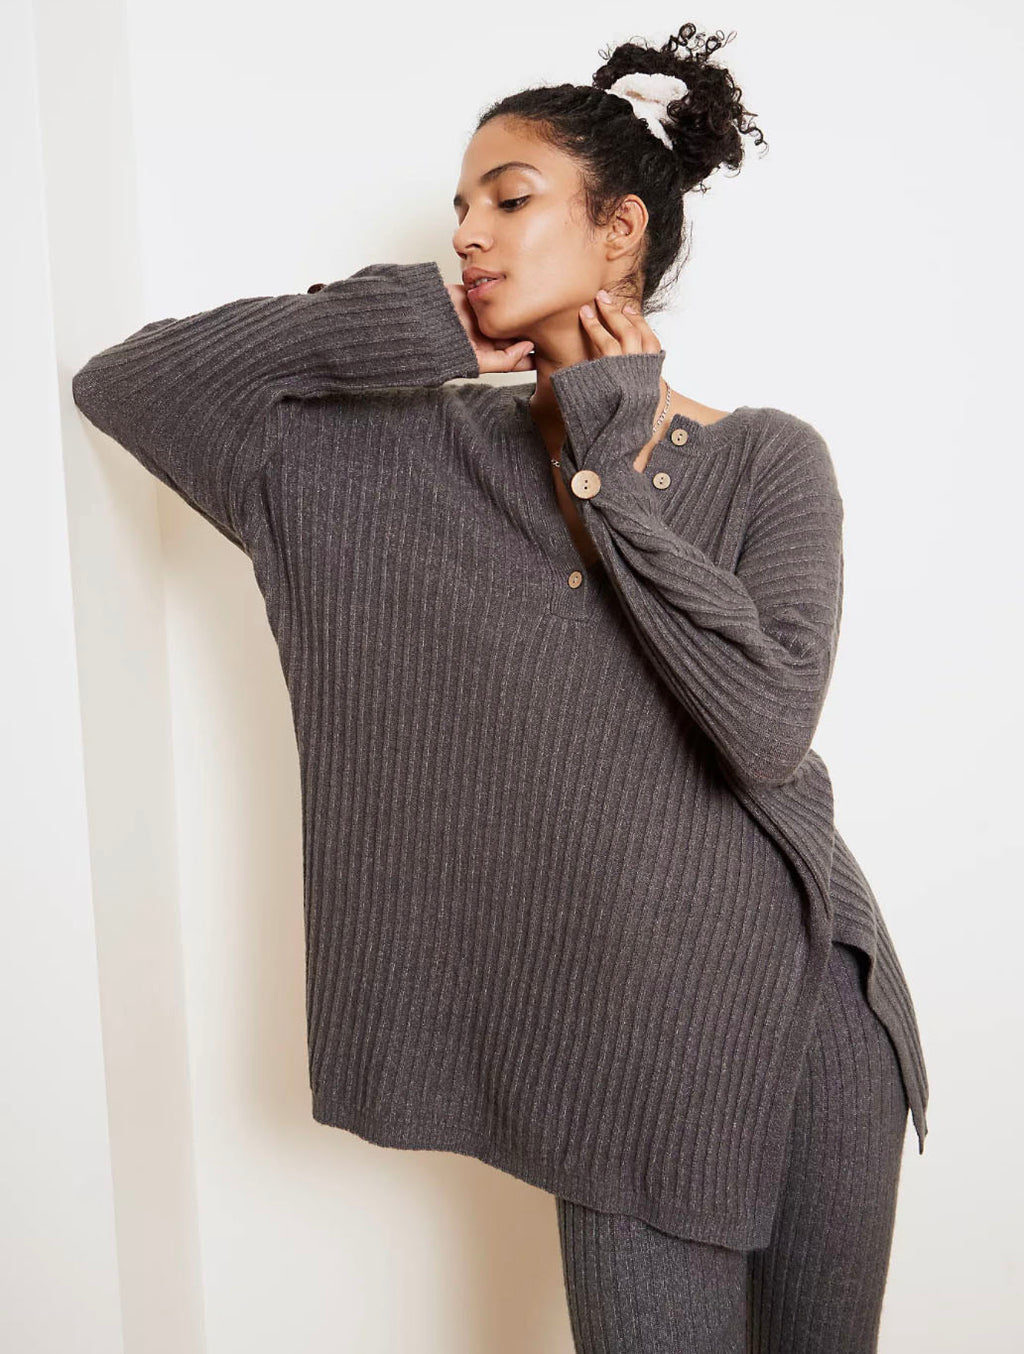 Free People Around The Clock Pullover Top in Charcoal